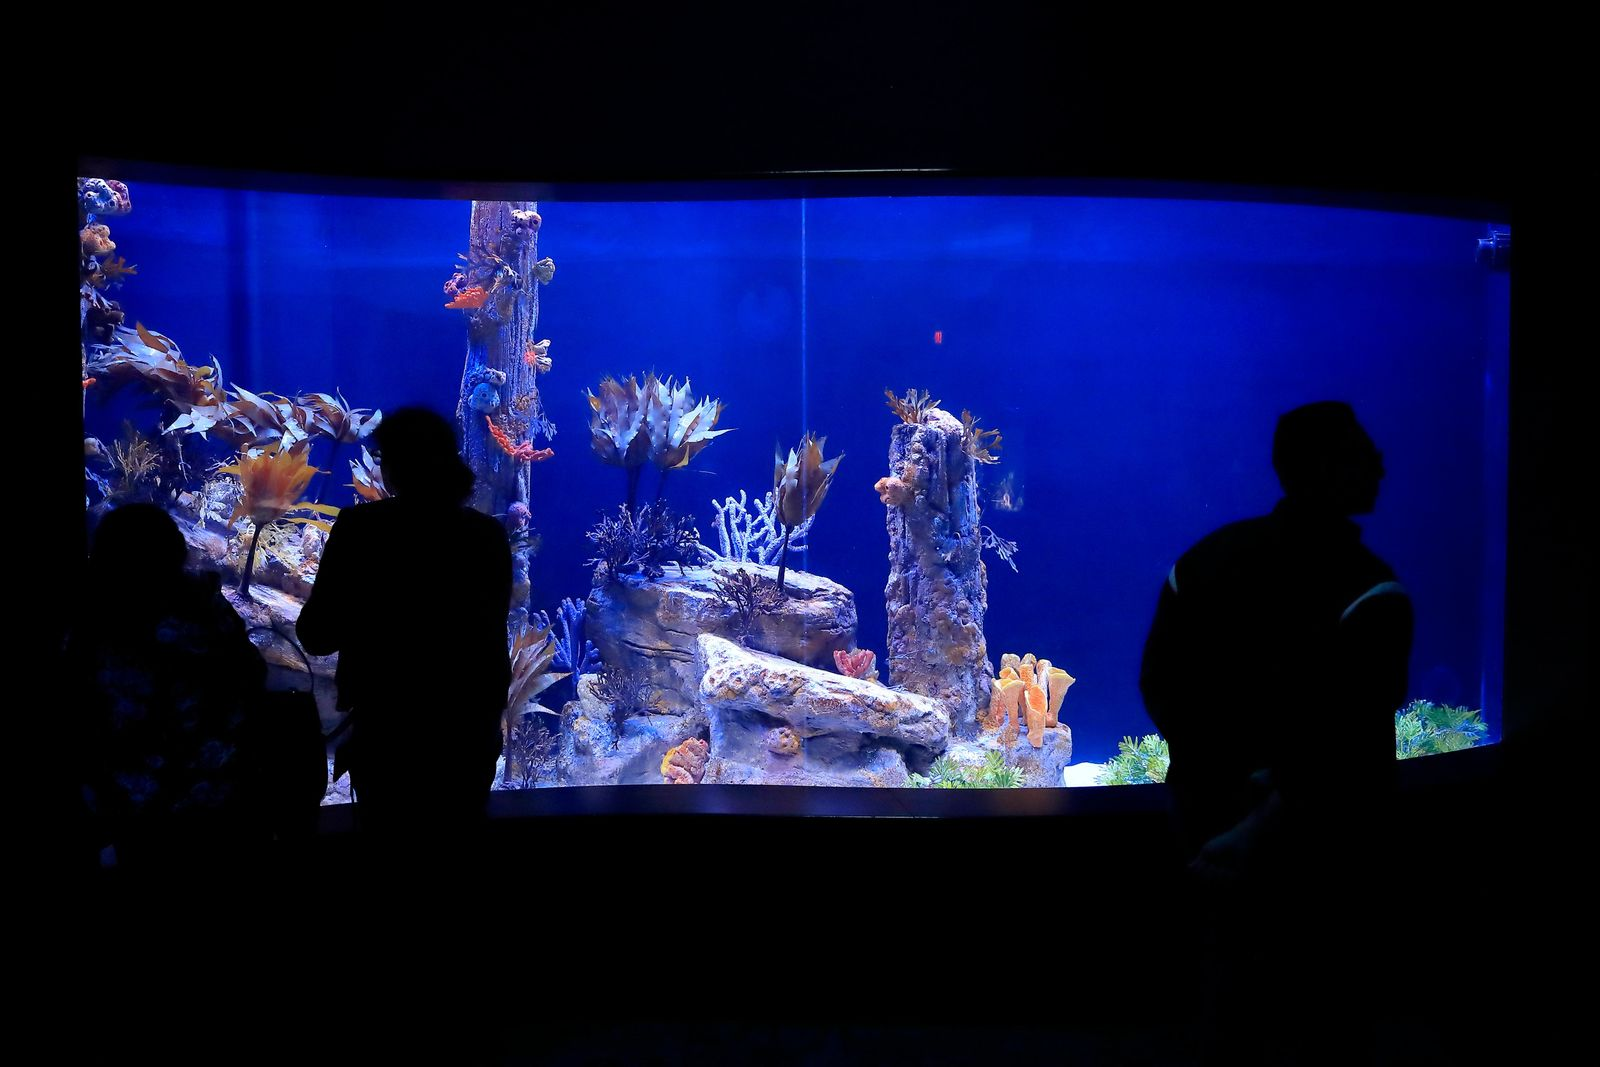 In this Friday, May 17, 2019 photo, visitors look at a tank holding sea dragons at the Birch Aquarium at the Scripps Institution of Oceanography at the University of California San Diego in San Diego.(AP Photo/Gregory Bull)